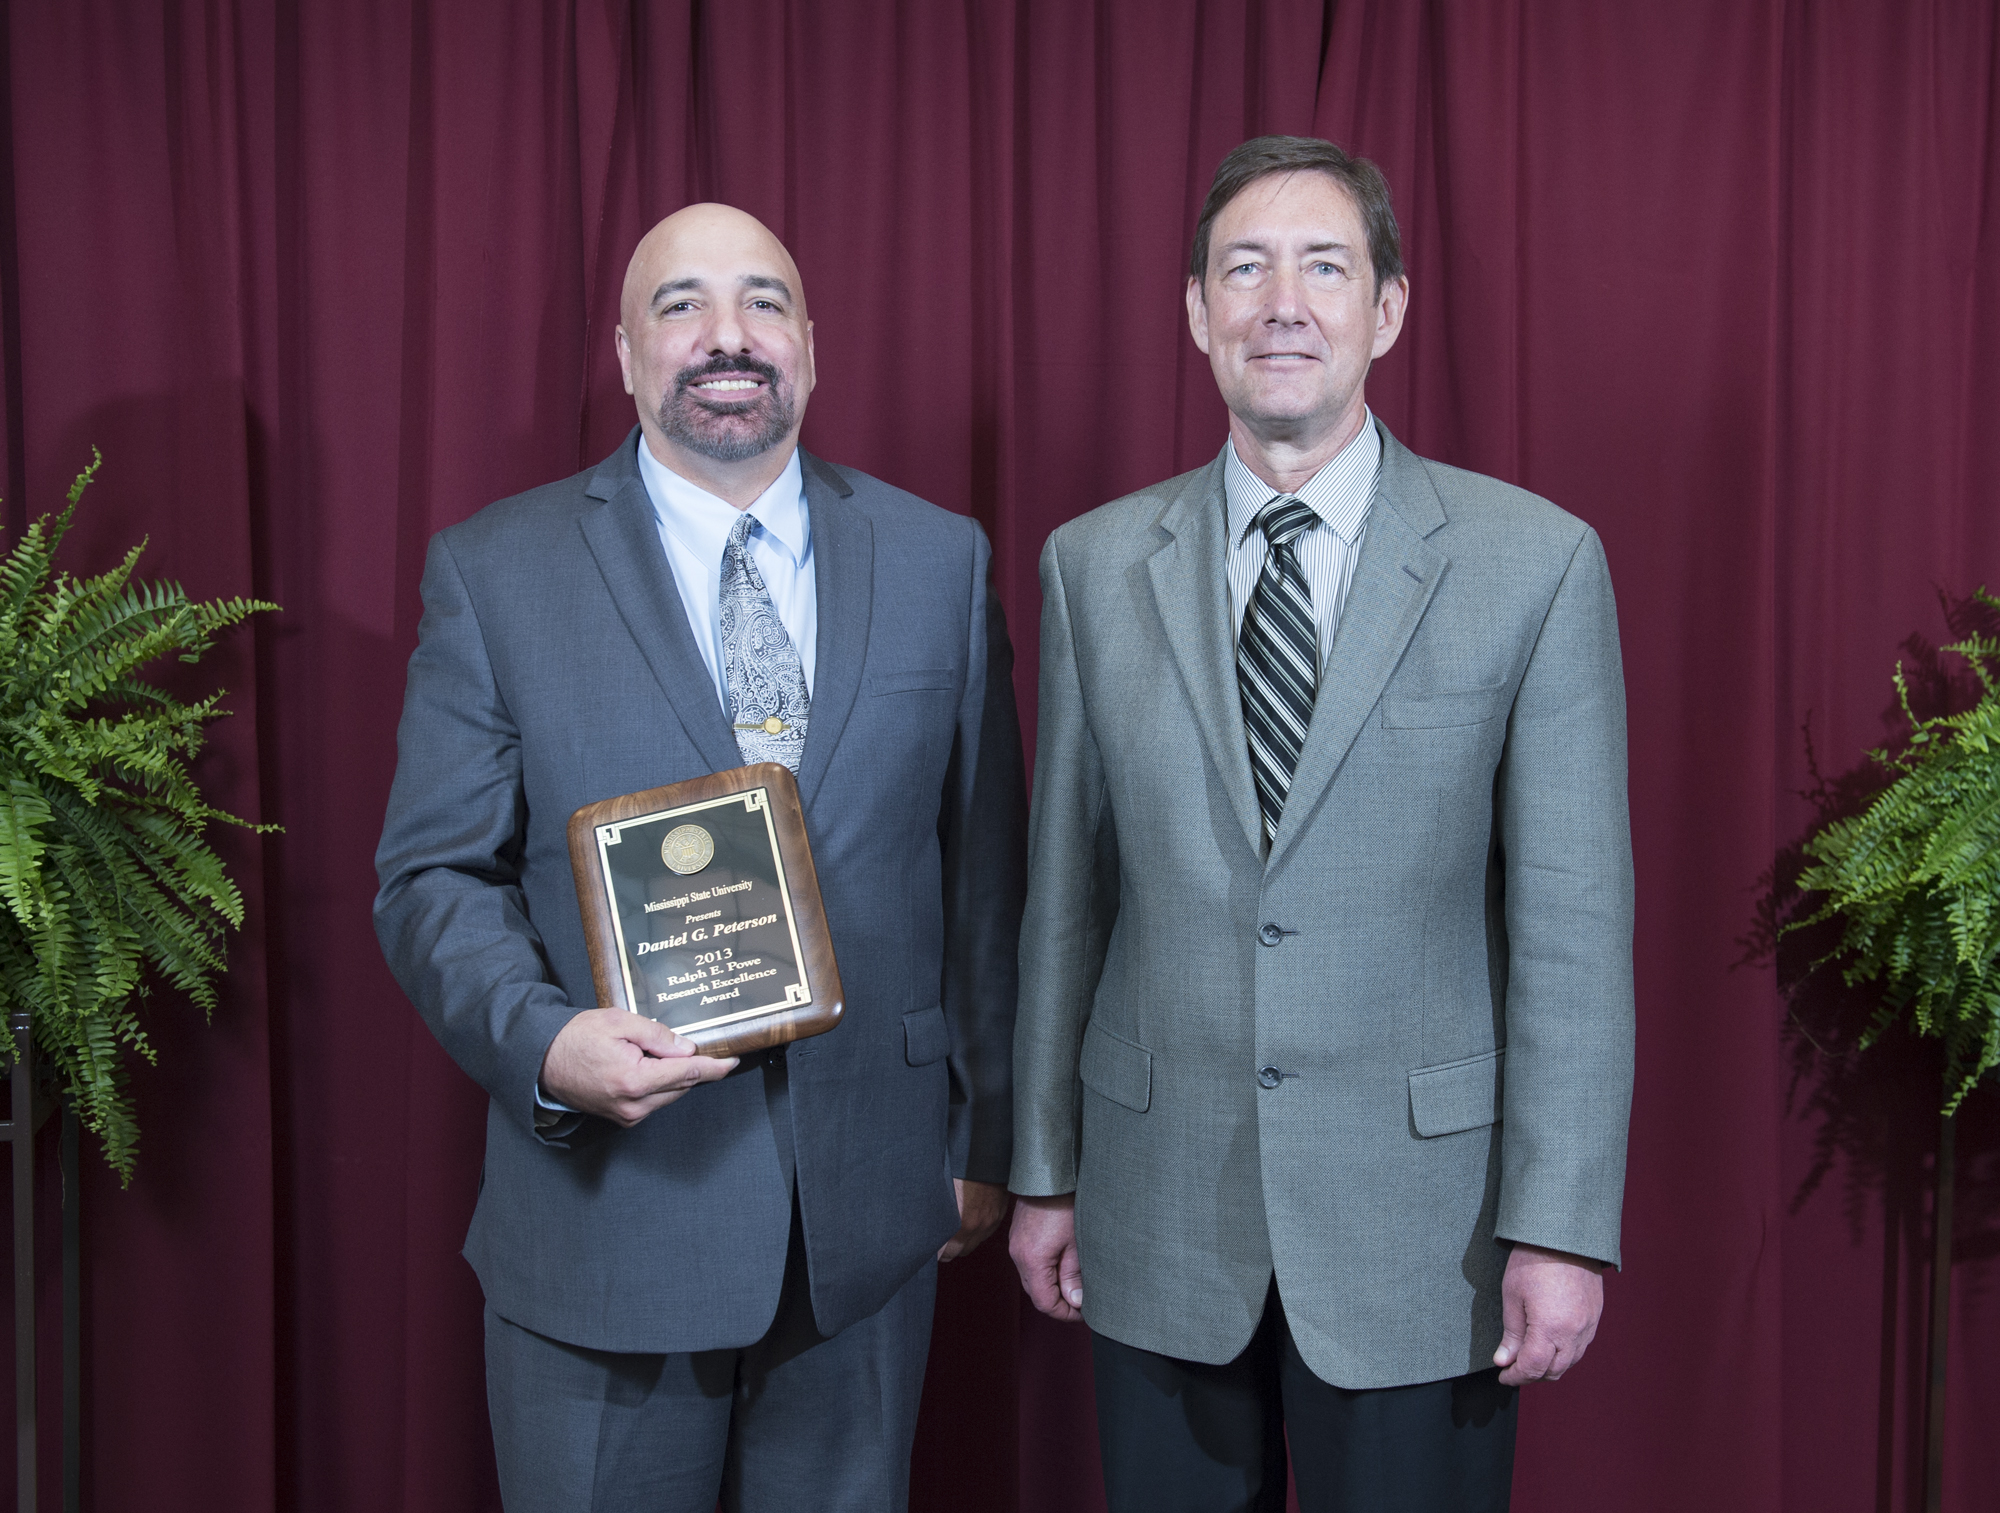 Plant and soil sciences department professor Daniel G. Peterson, left, the winner of the 2013 Ralph E. Powe Research Excellence Award, was congratulated by Greg Bohach, vice president for agriculture, forestry and veterinary medicine.